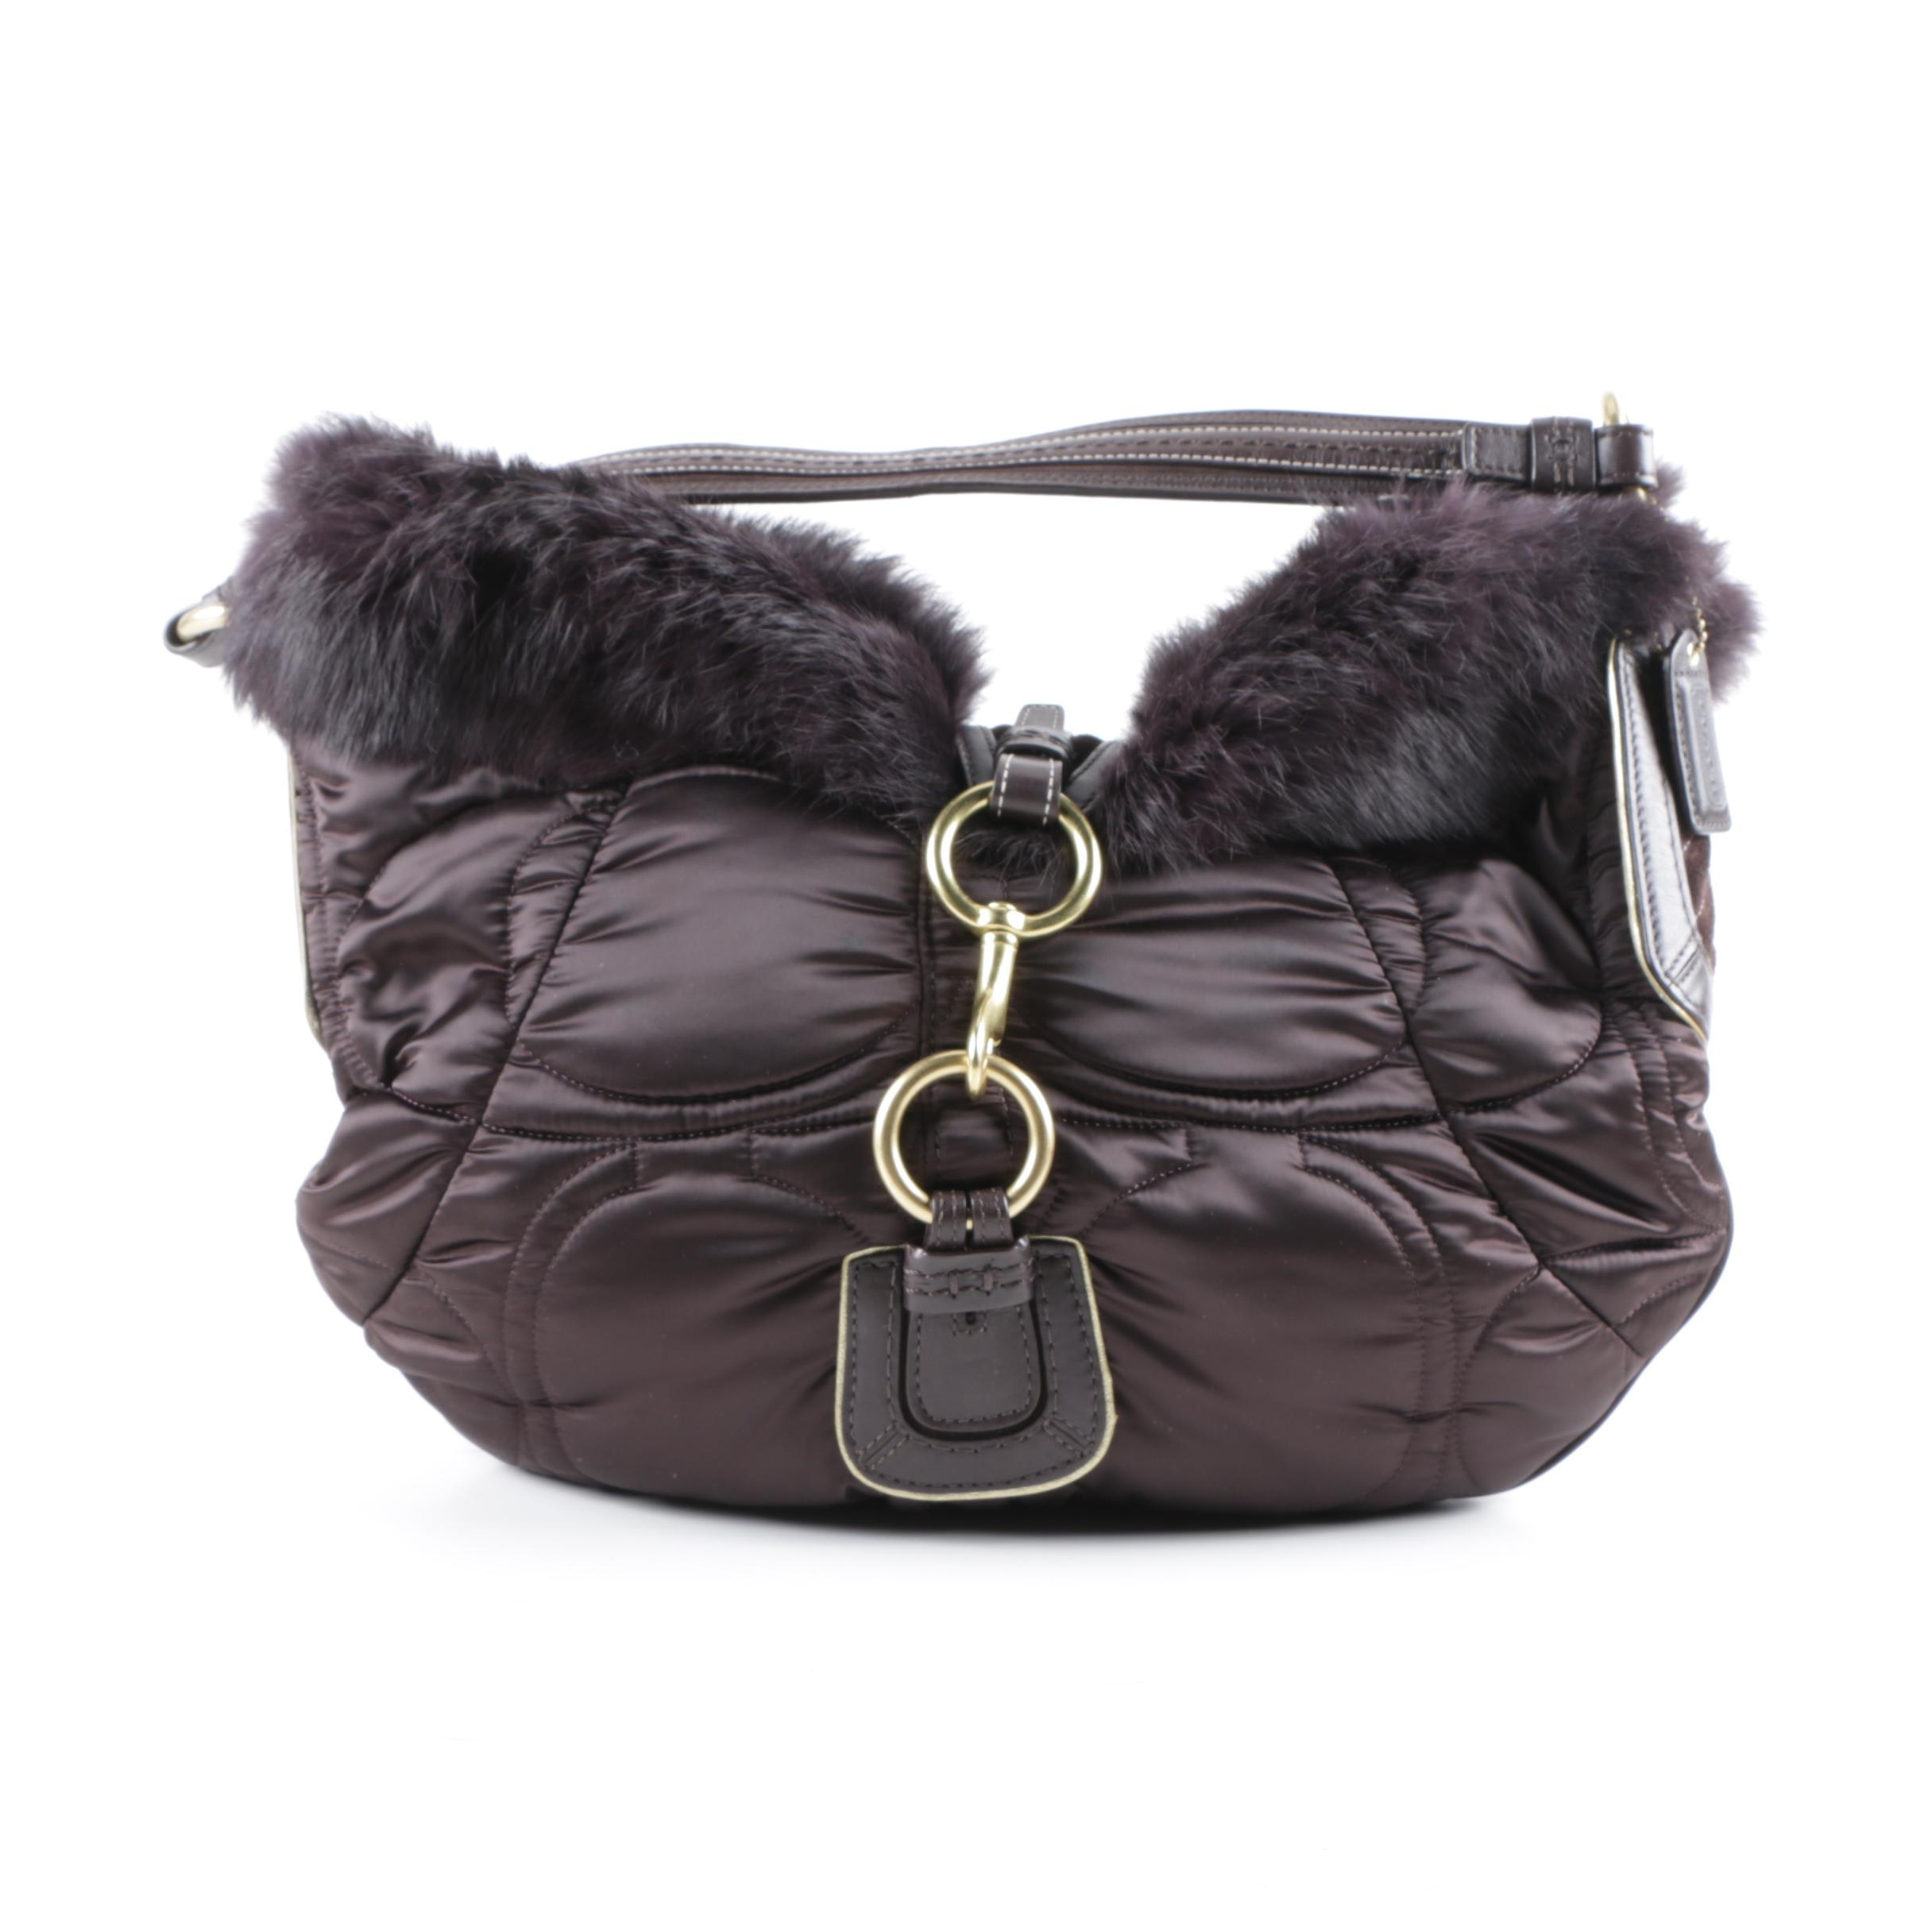 2005 Coach Soho Quilted Sateen Handbag with Rabbit Fur Trim